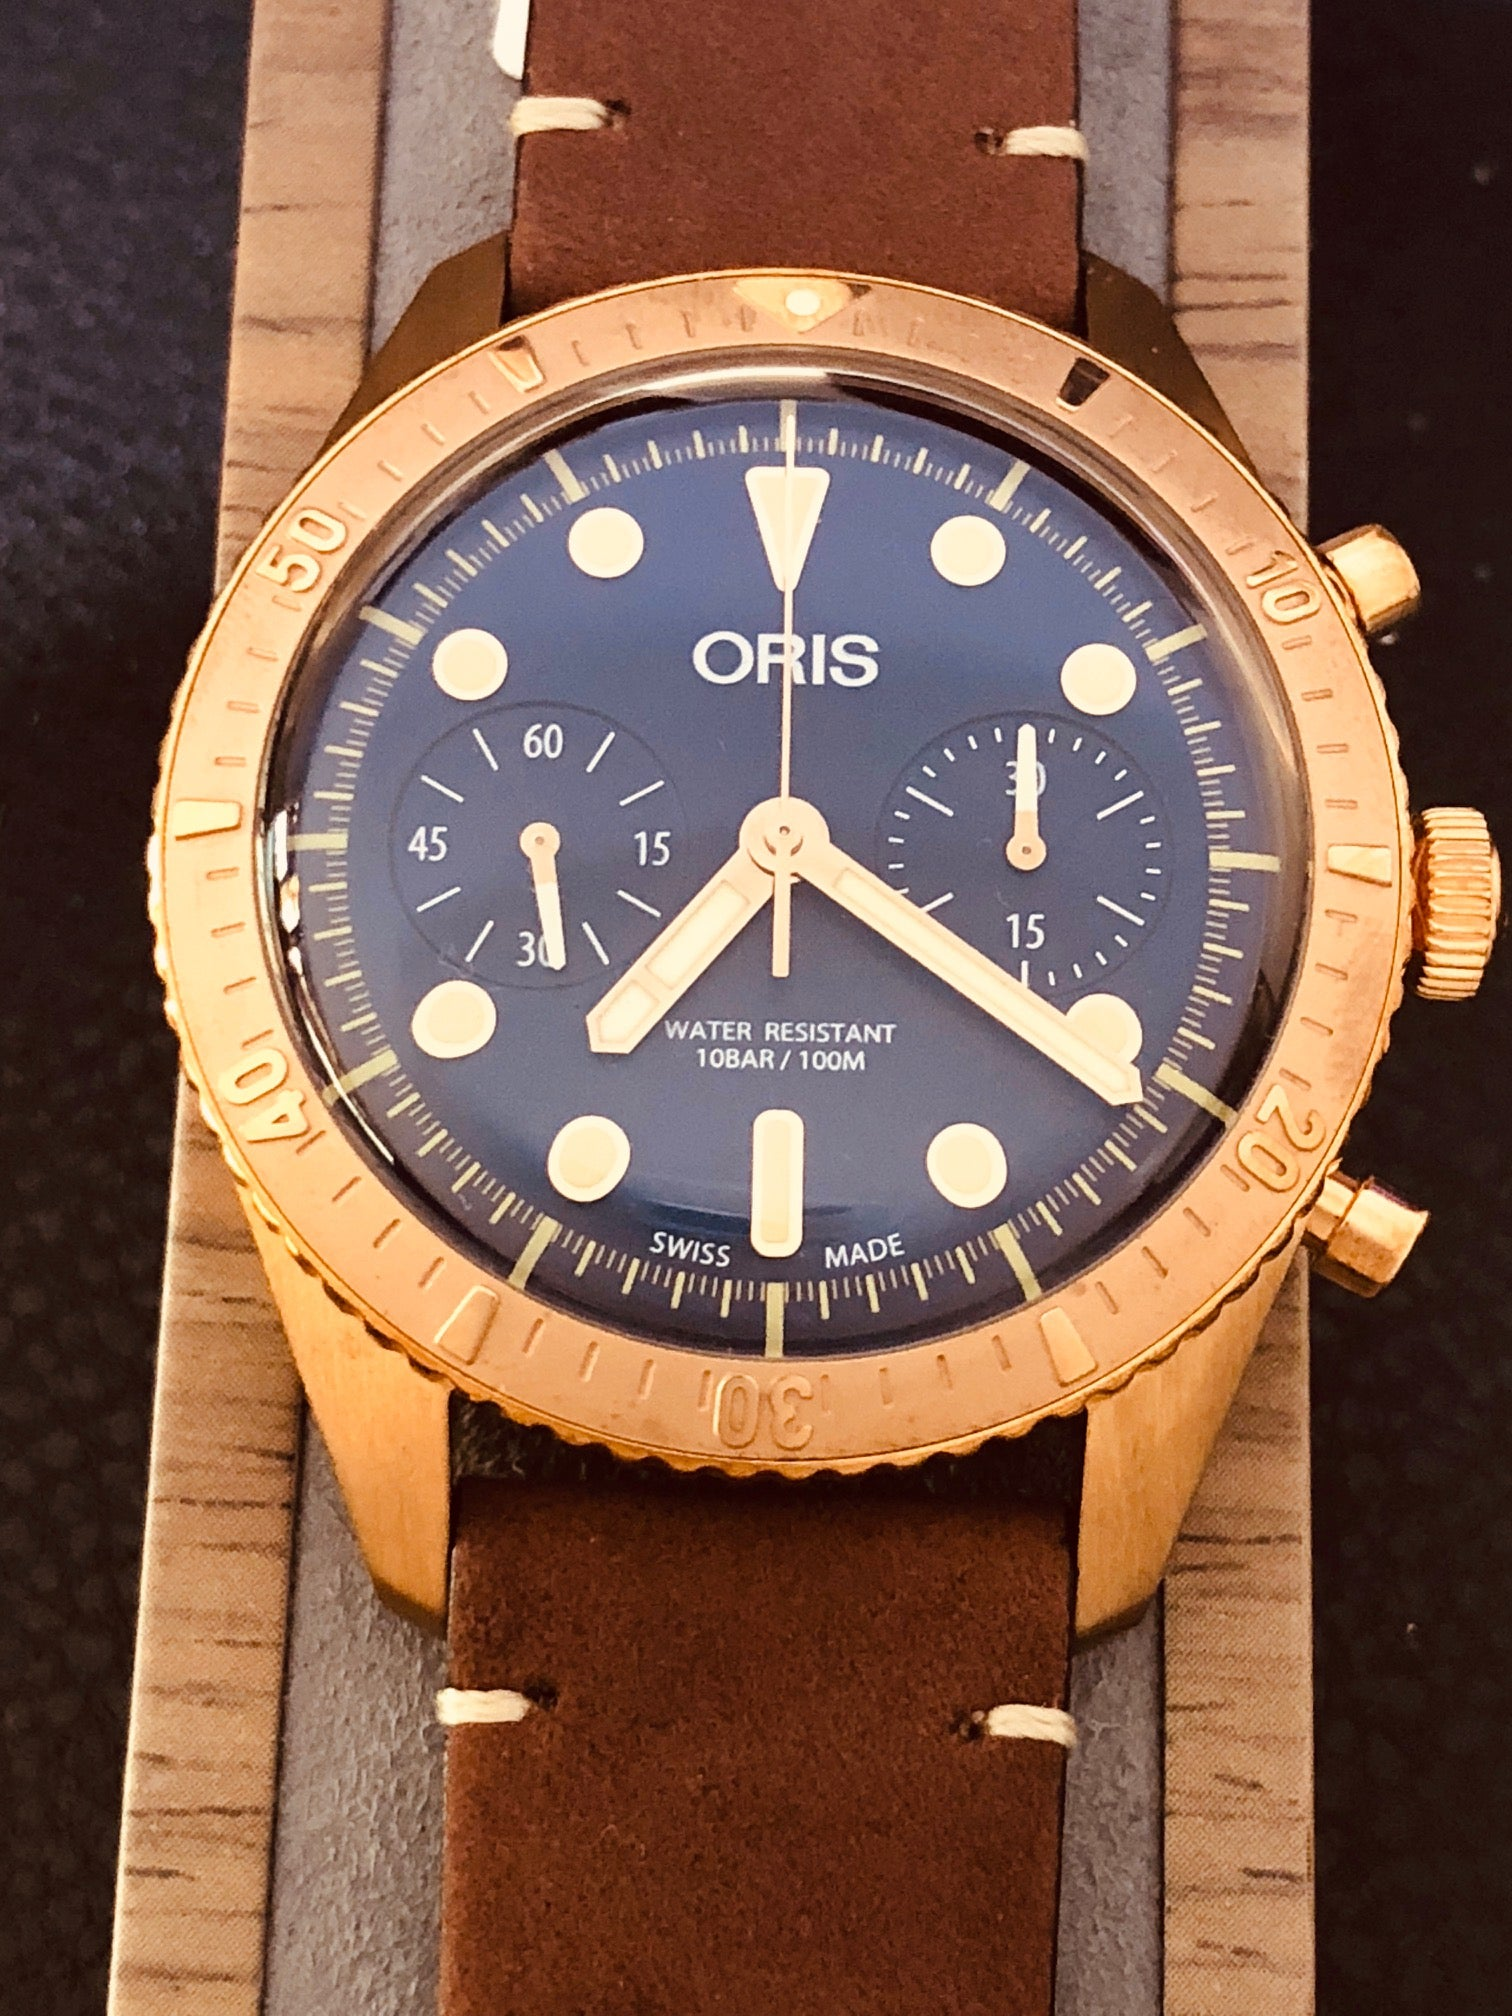 The Oris Carl Brashear Bronze Limited Edition Chronograph Dive Watch